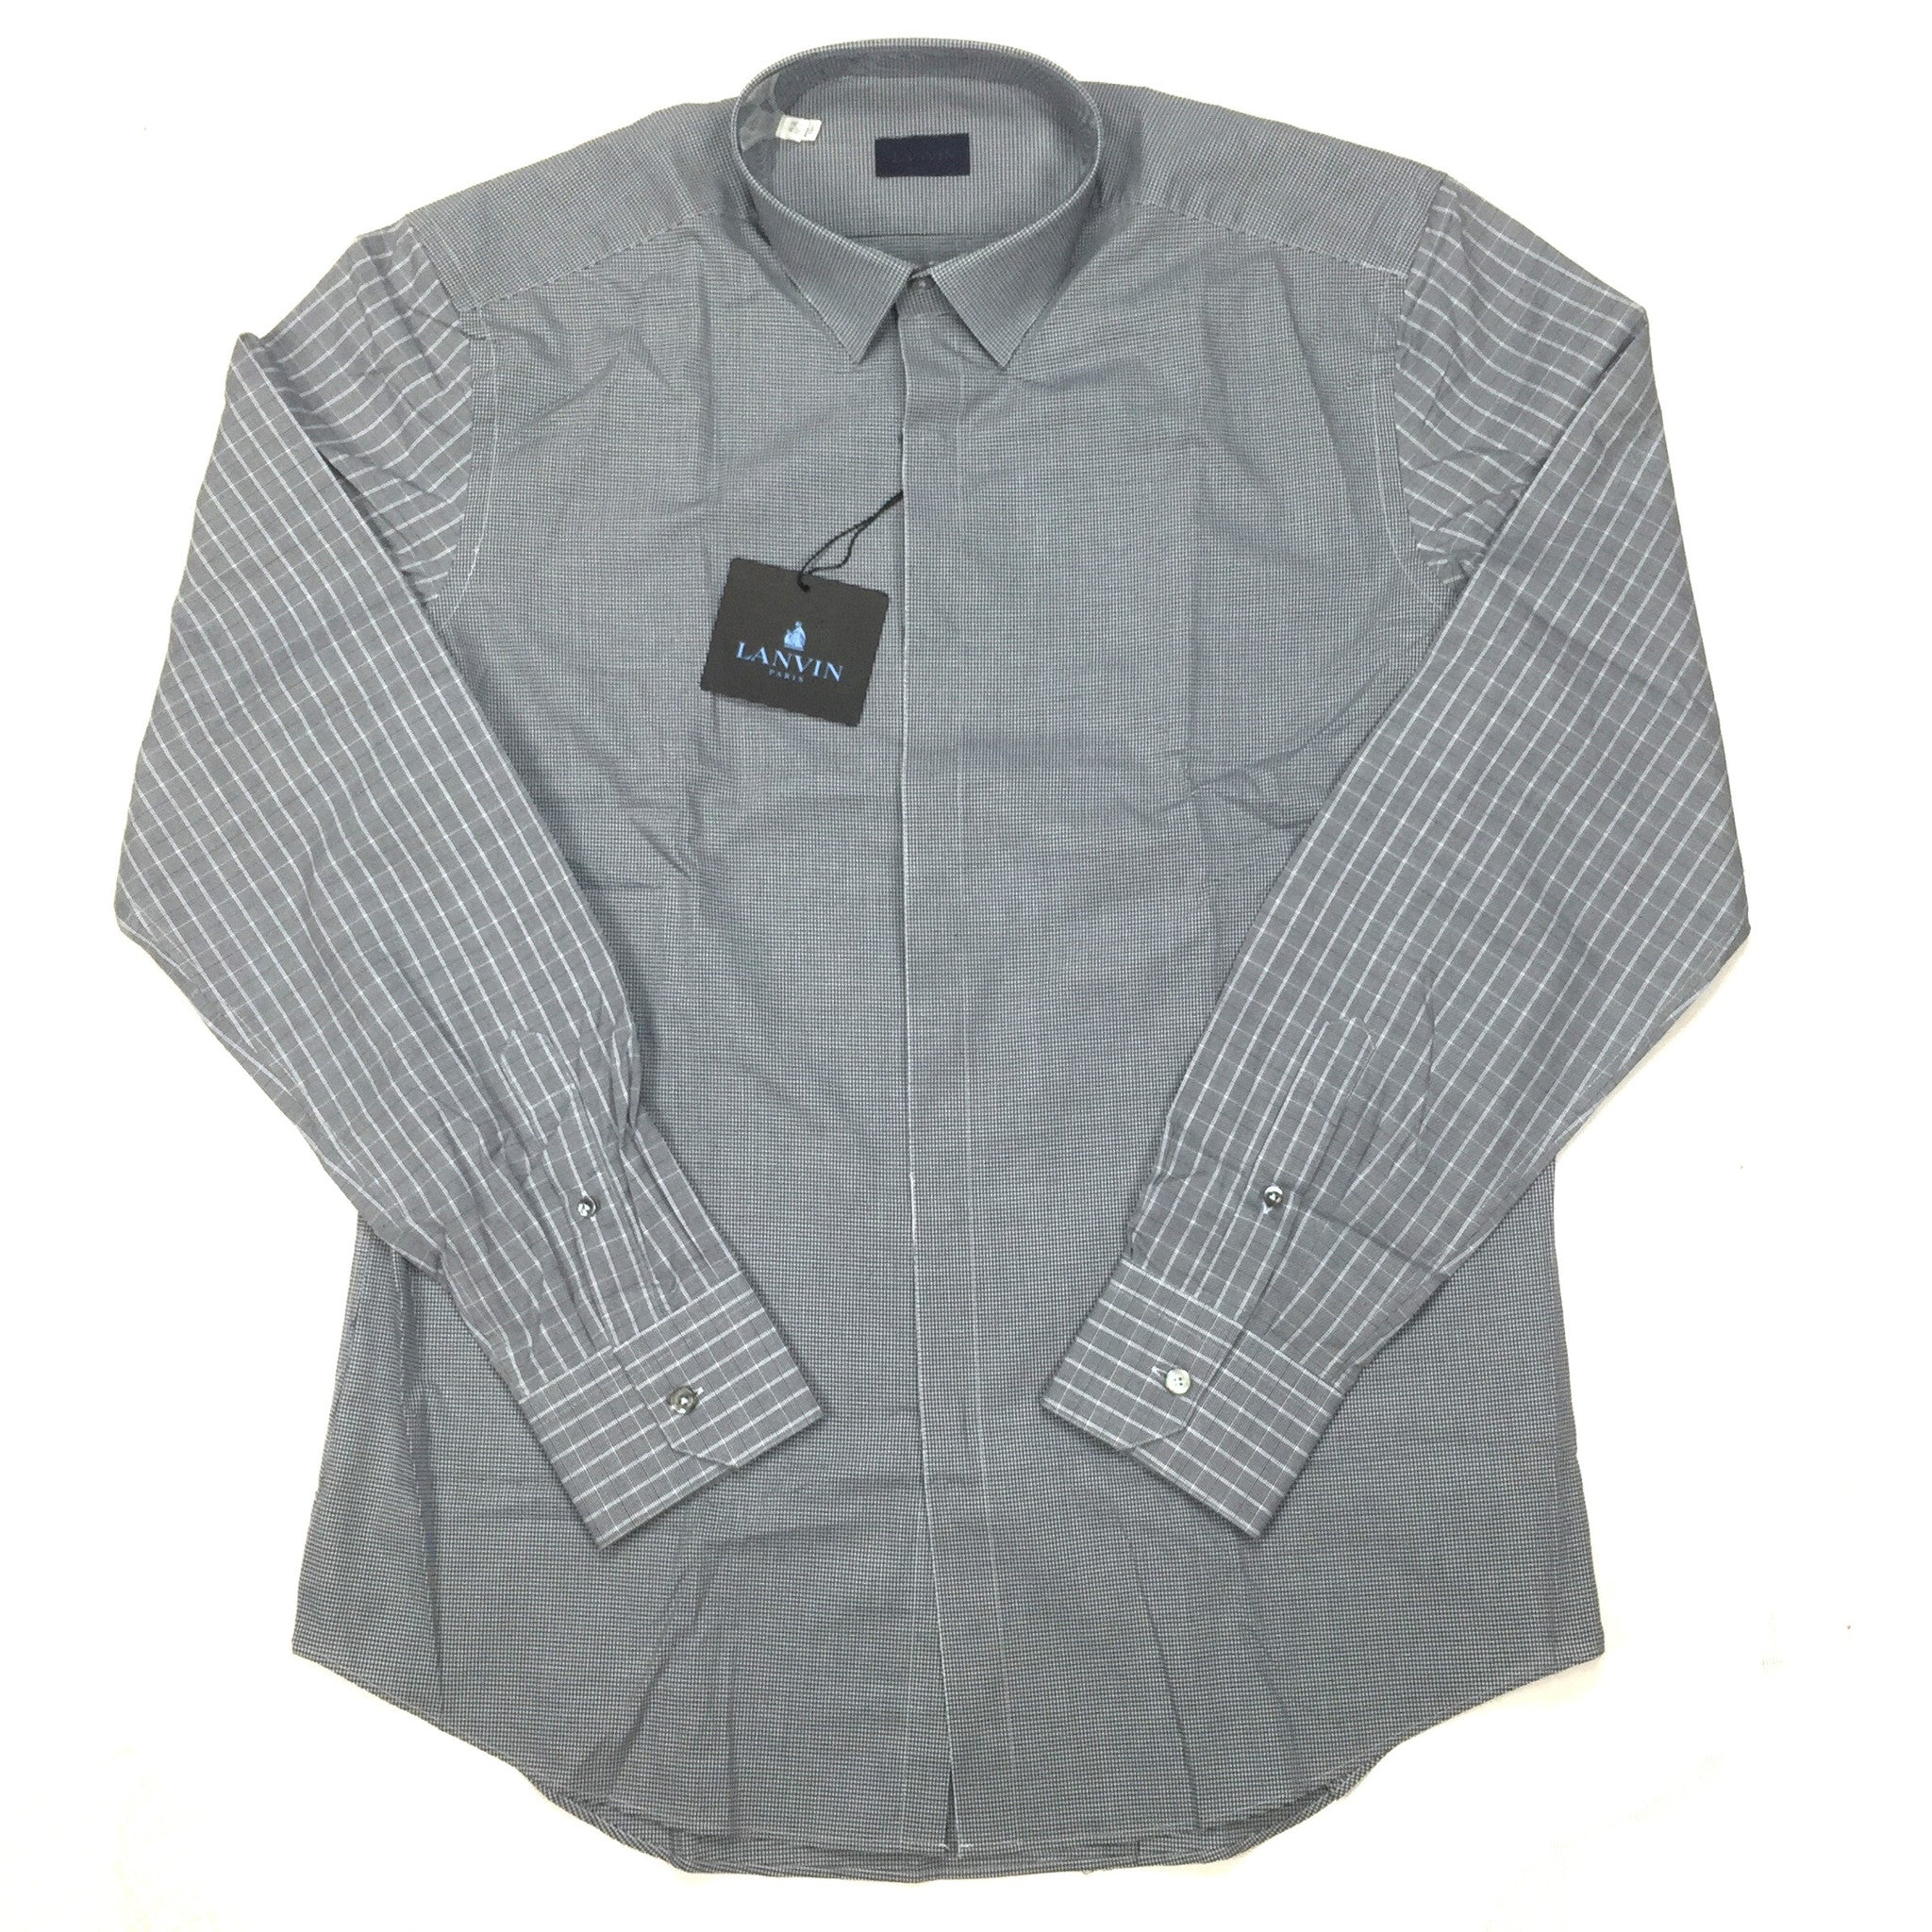 Lanvin - Multi Material Button Down Shirt